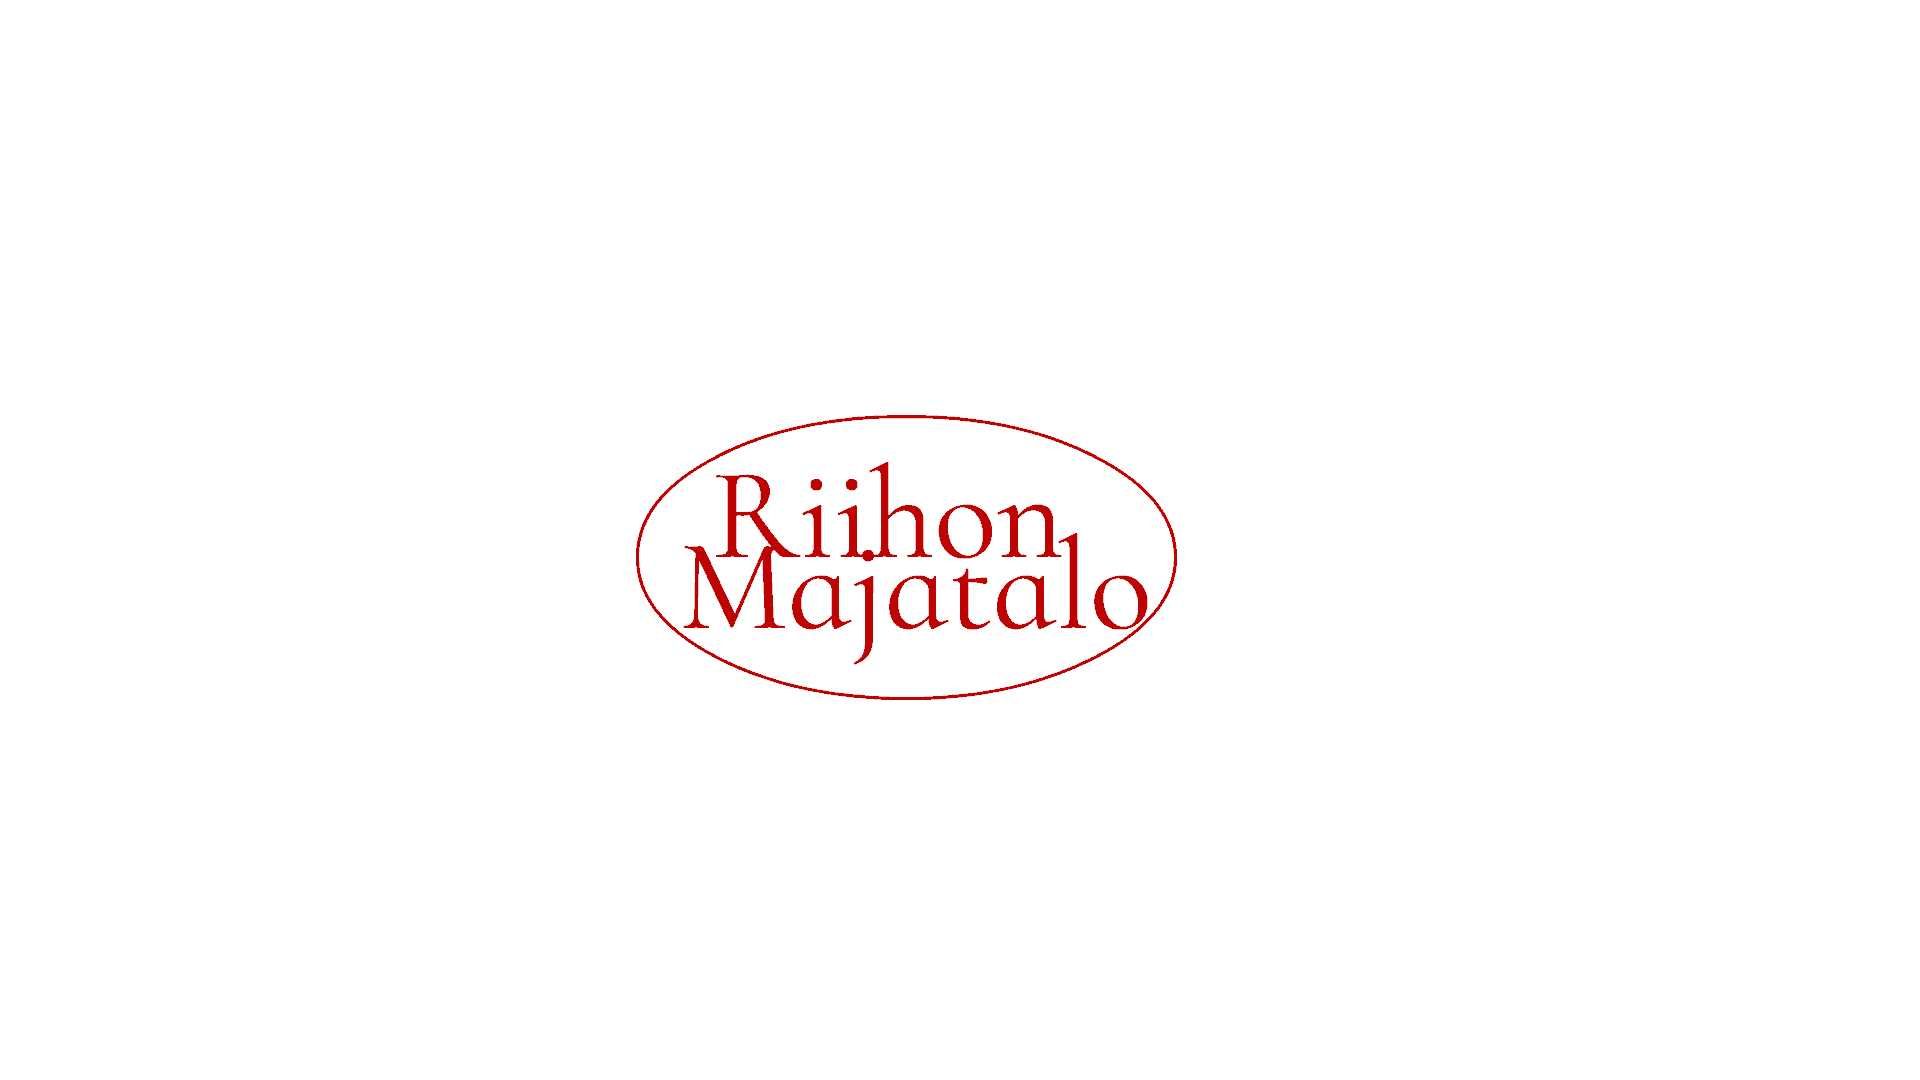 Majatalon logo transparent